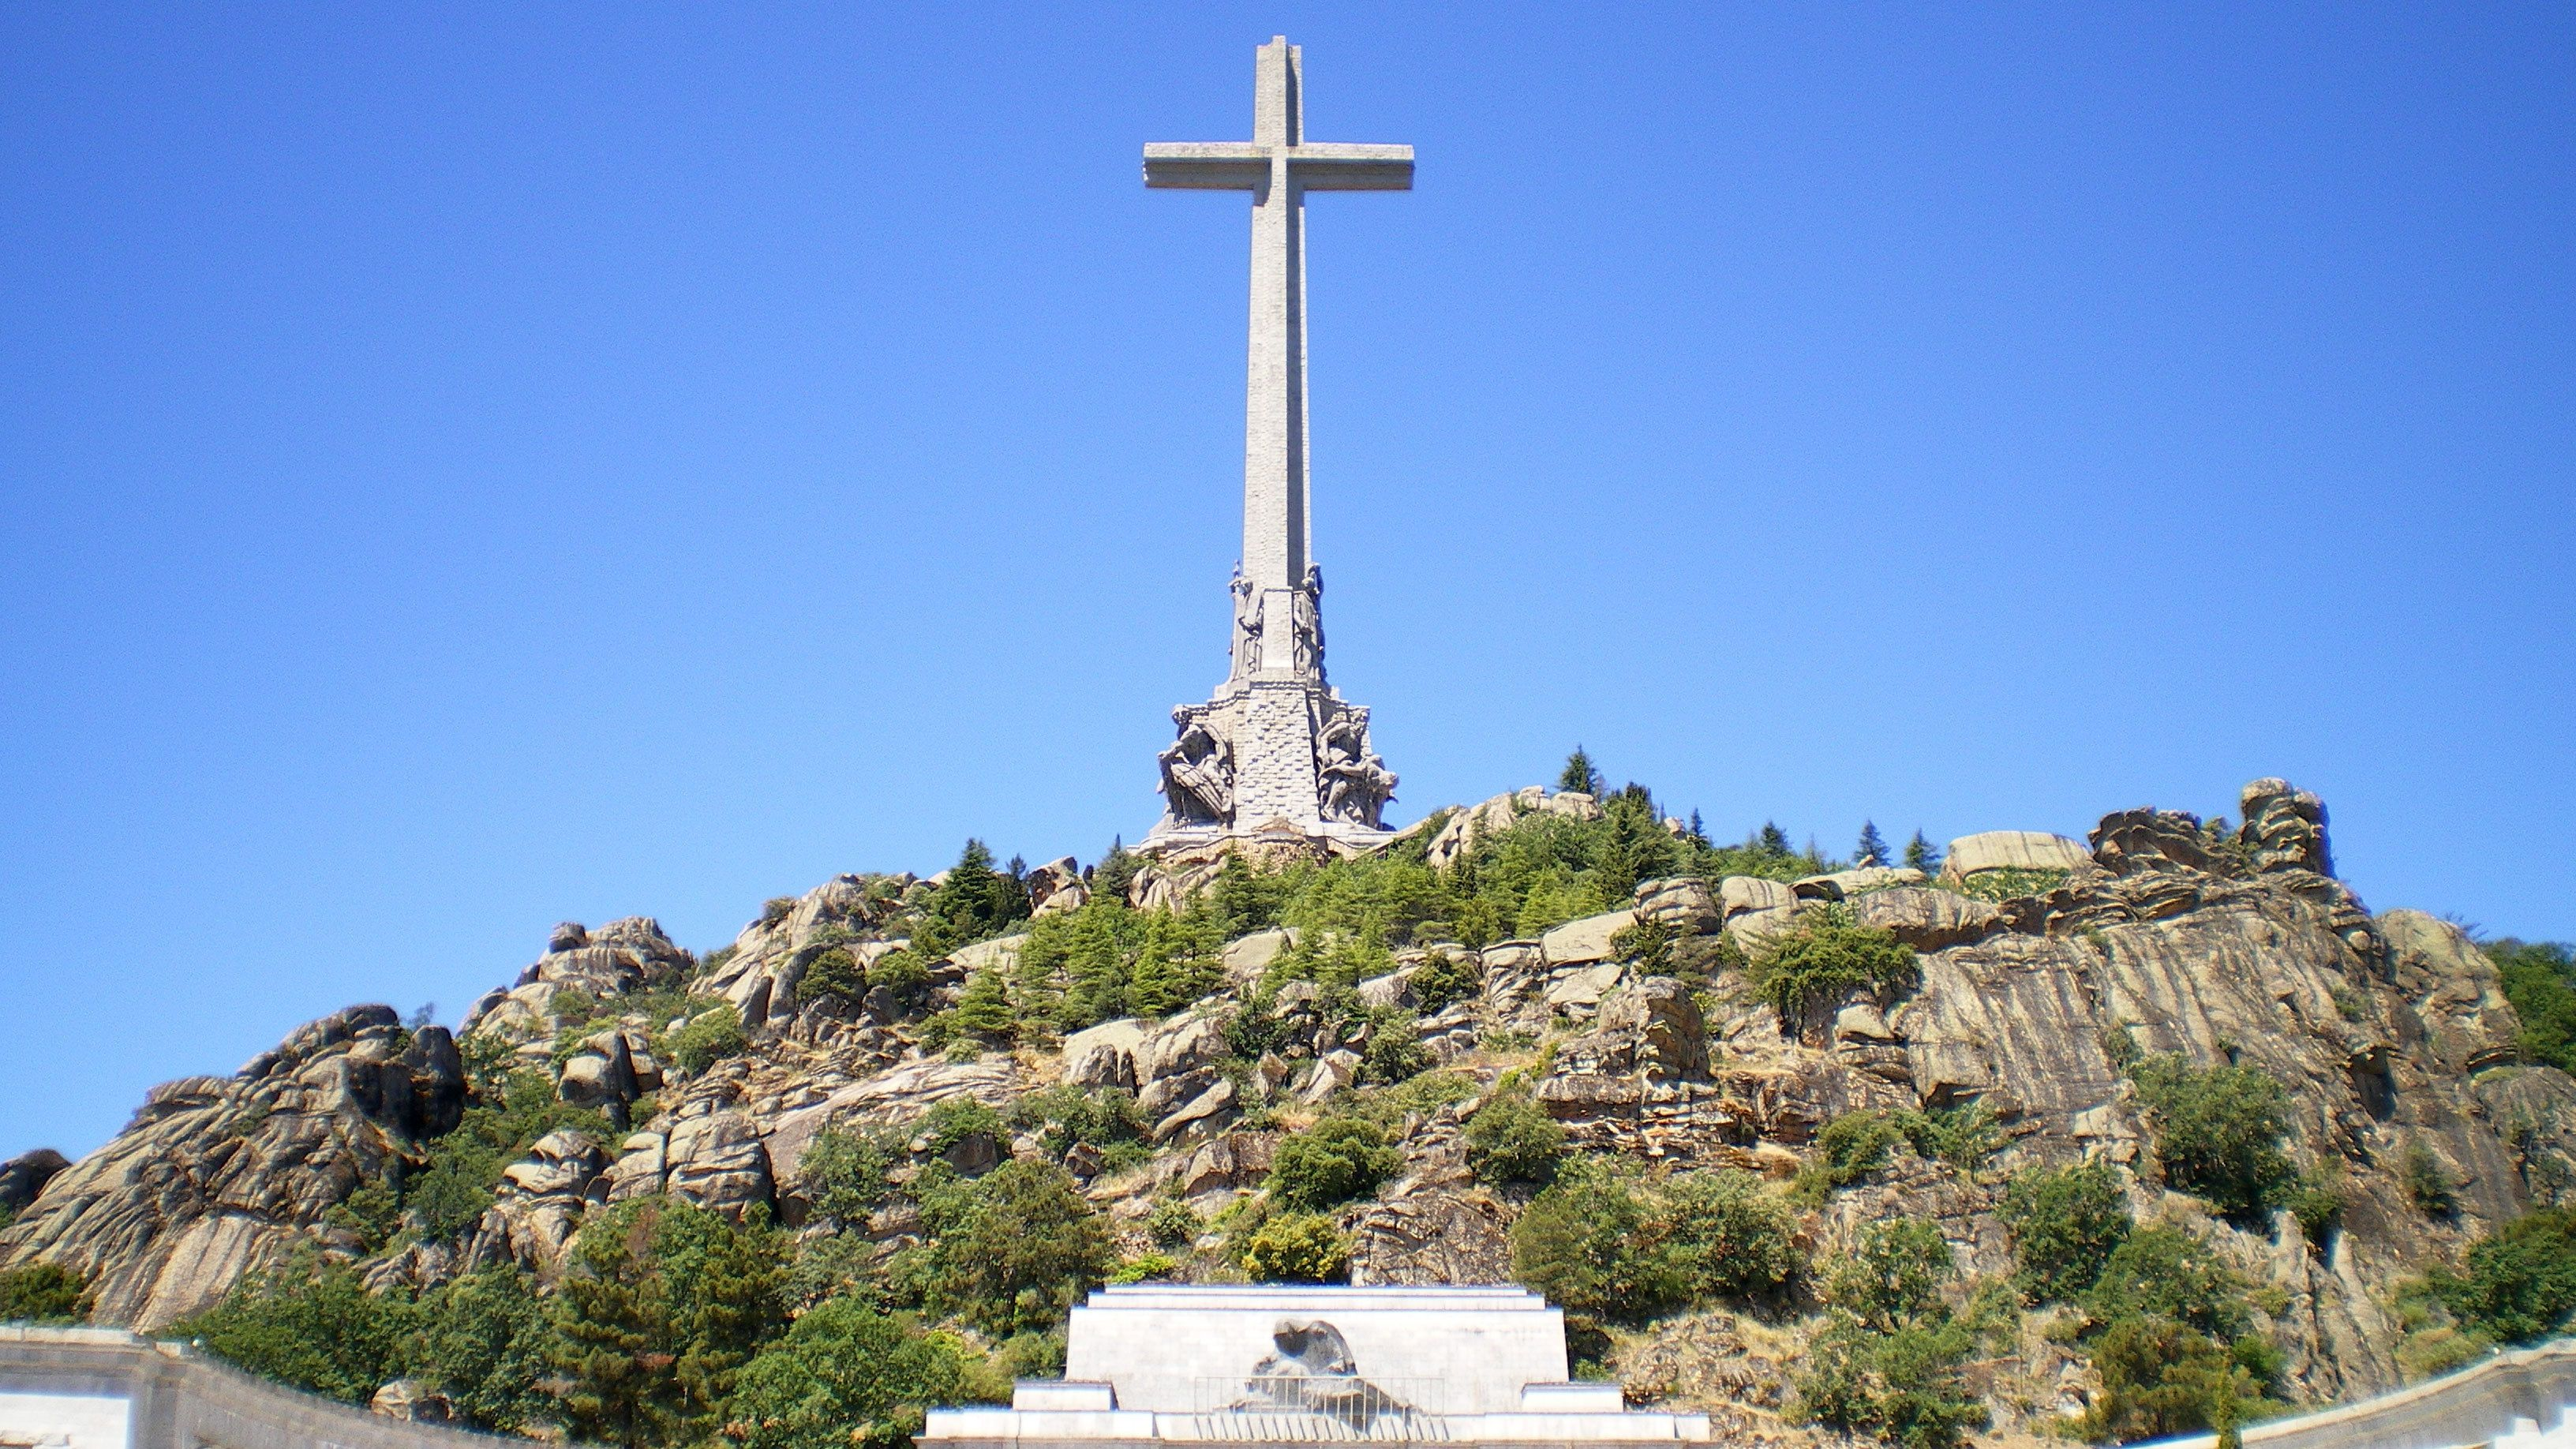 View of a cross on a hill in Spain